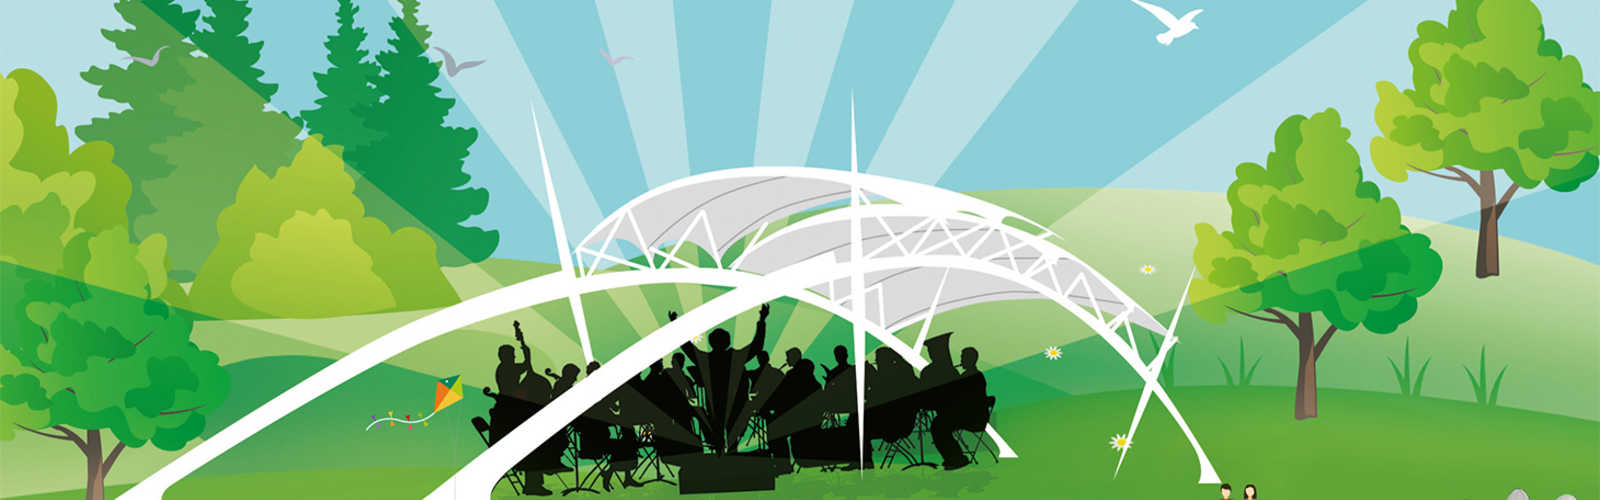 Join us at Maidstone's Proms in the Park - Saturday, 25 May